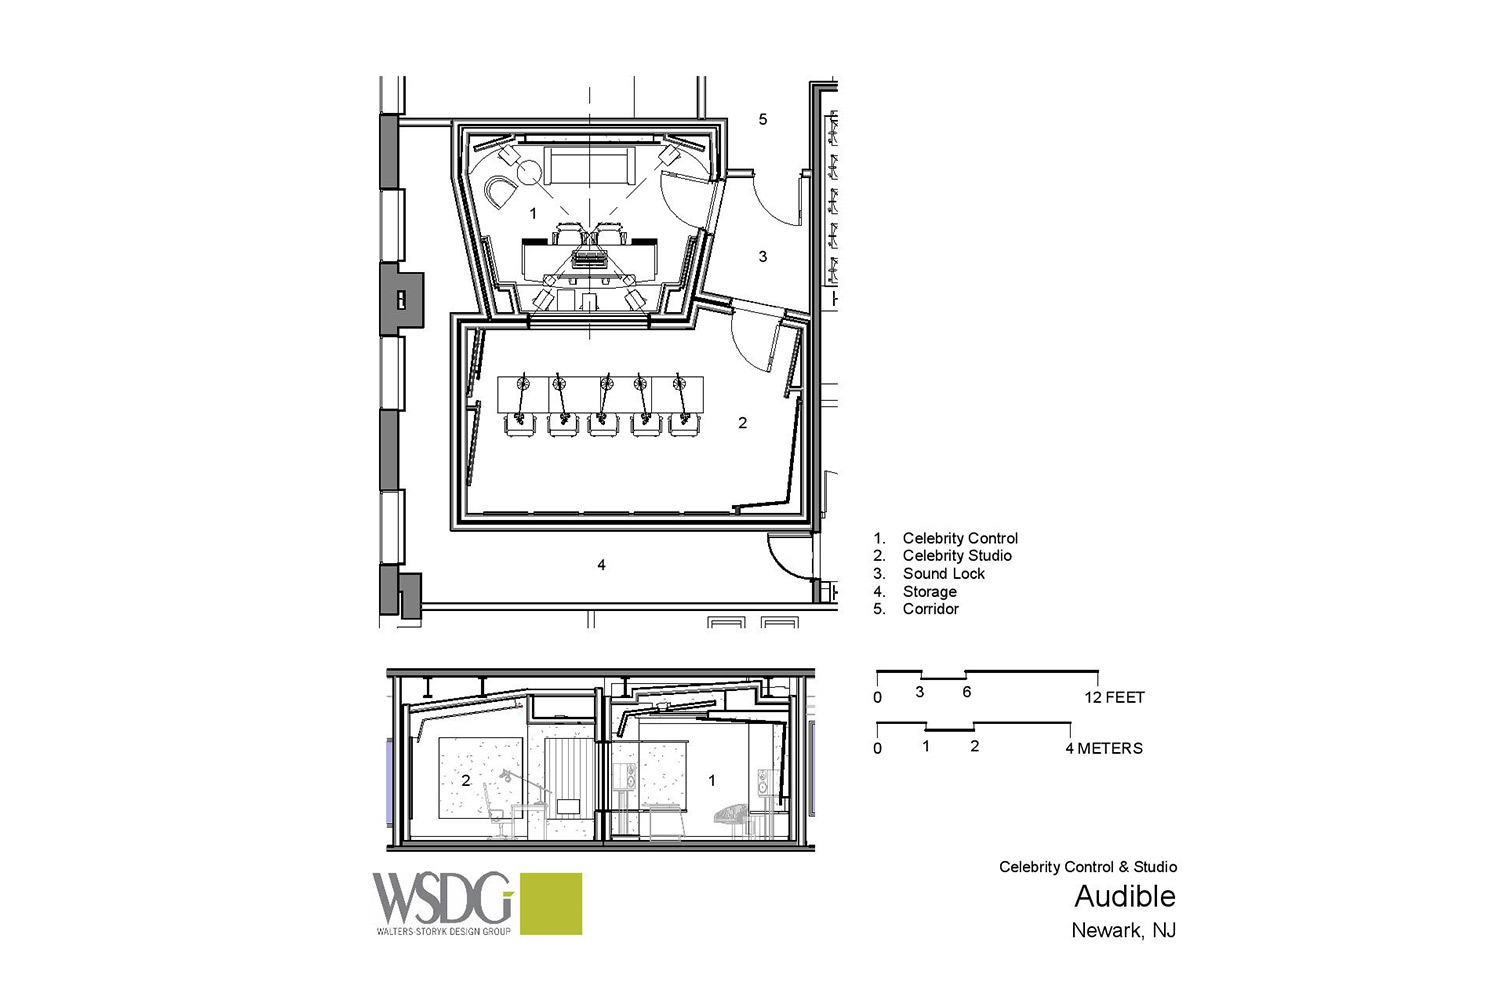 Audible is the world's largest producer/distributor of downloadable audiobooks and other spoken-word entertainment. WSDG was commissioned to design their new state-of-the-art recording studio complex. Presentation Drawing 3